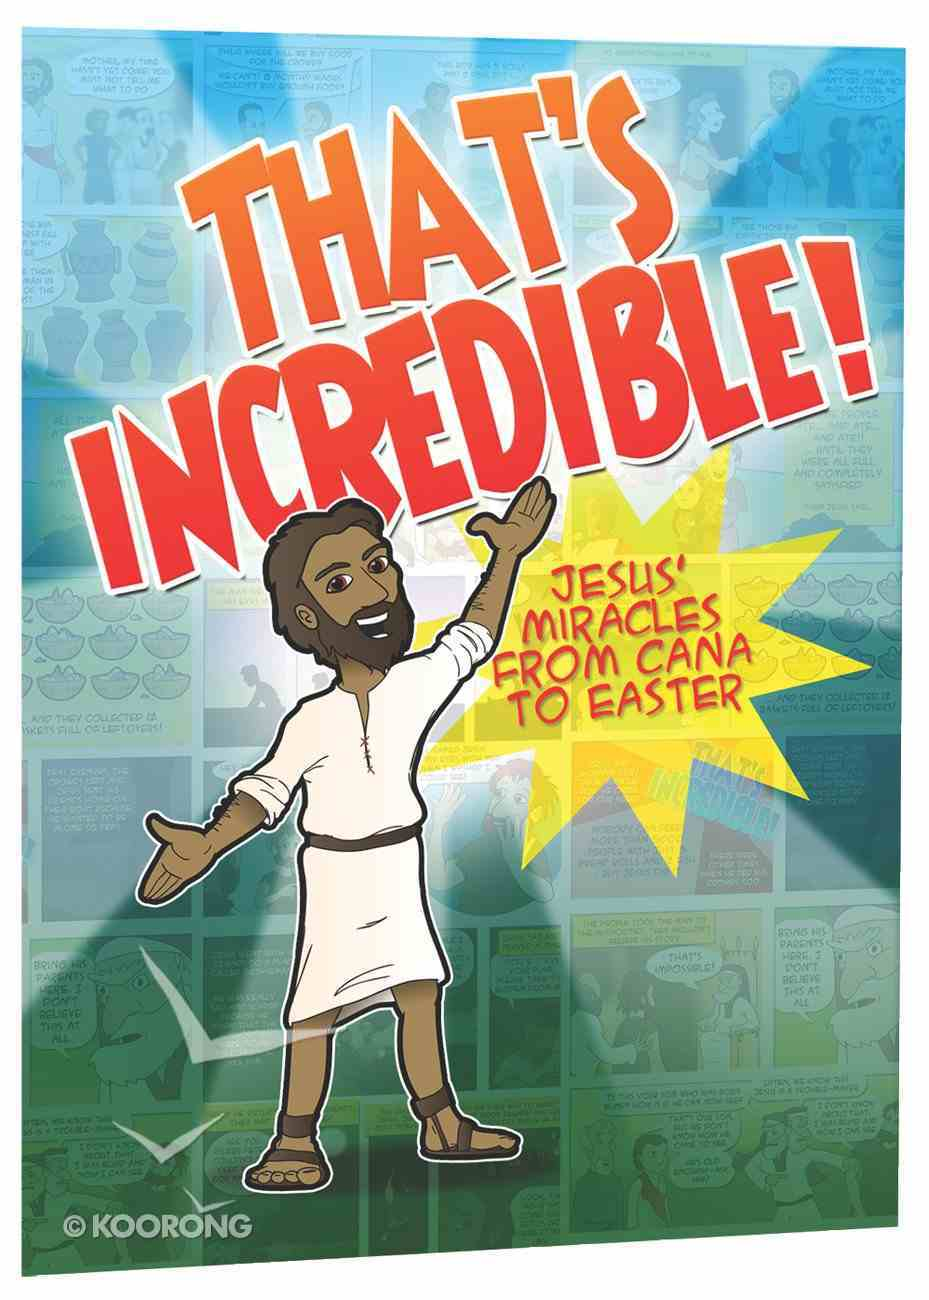 That's Incredible - Jesus' Miracles From Cana to Easter Paperback